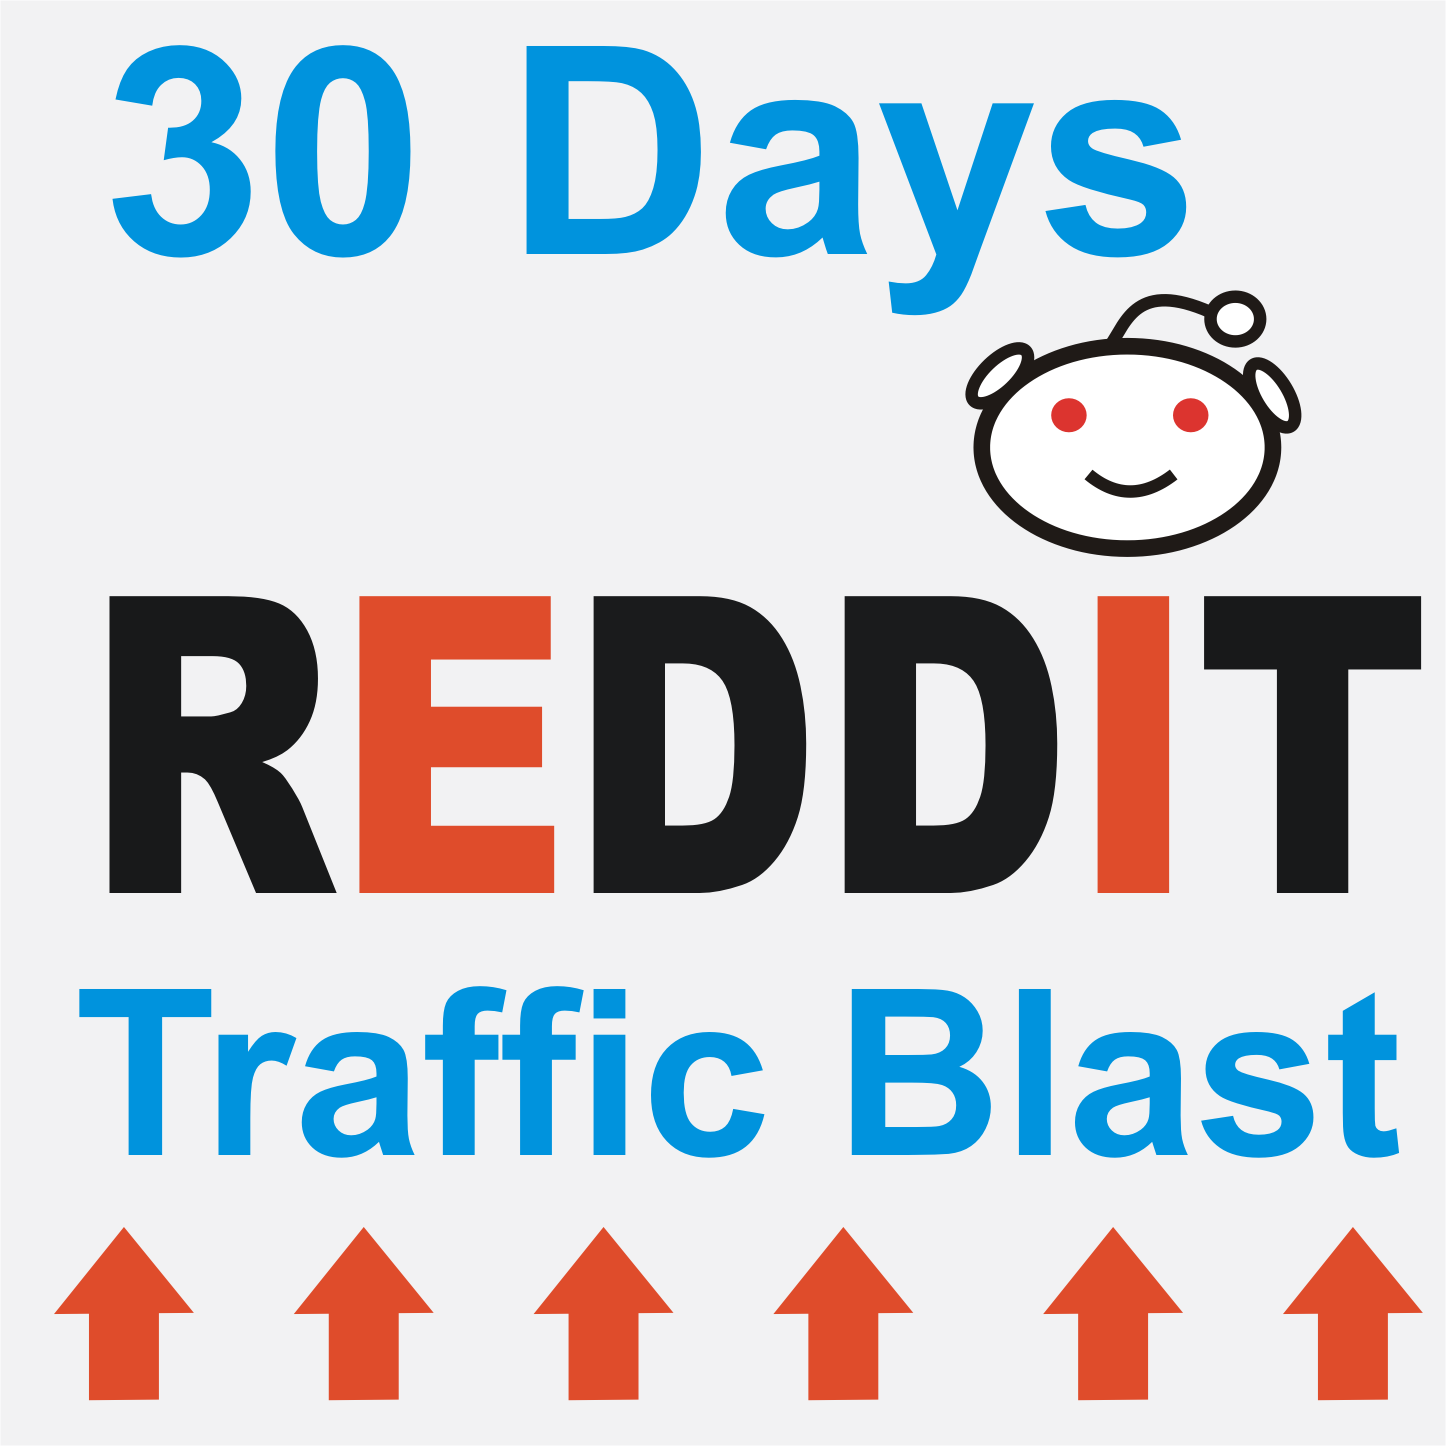 30 days Reddit traffic blast for your website